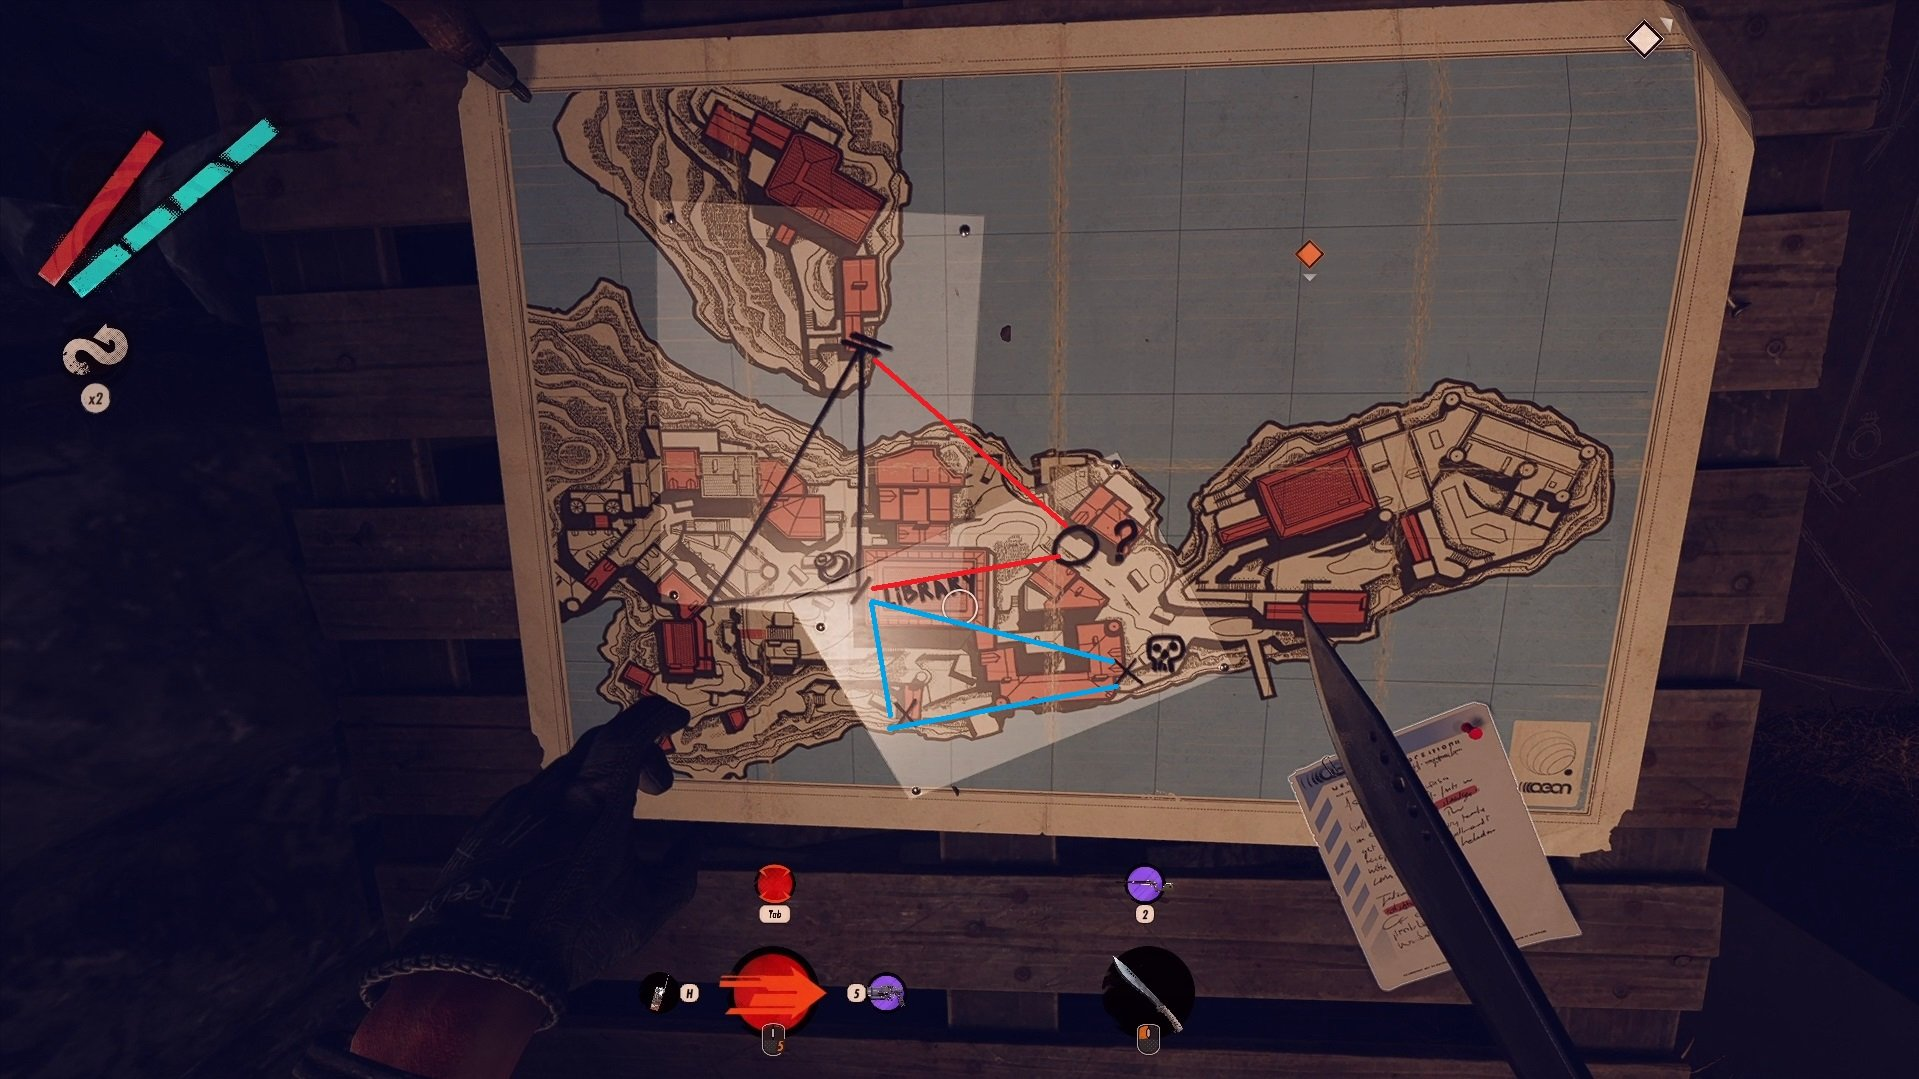 Deathloop - Cave Safe With Maps Drawn